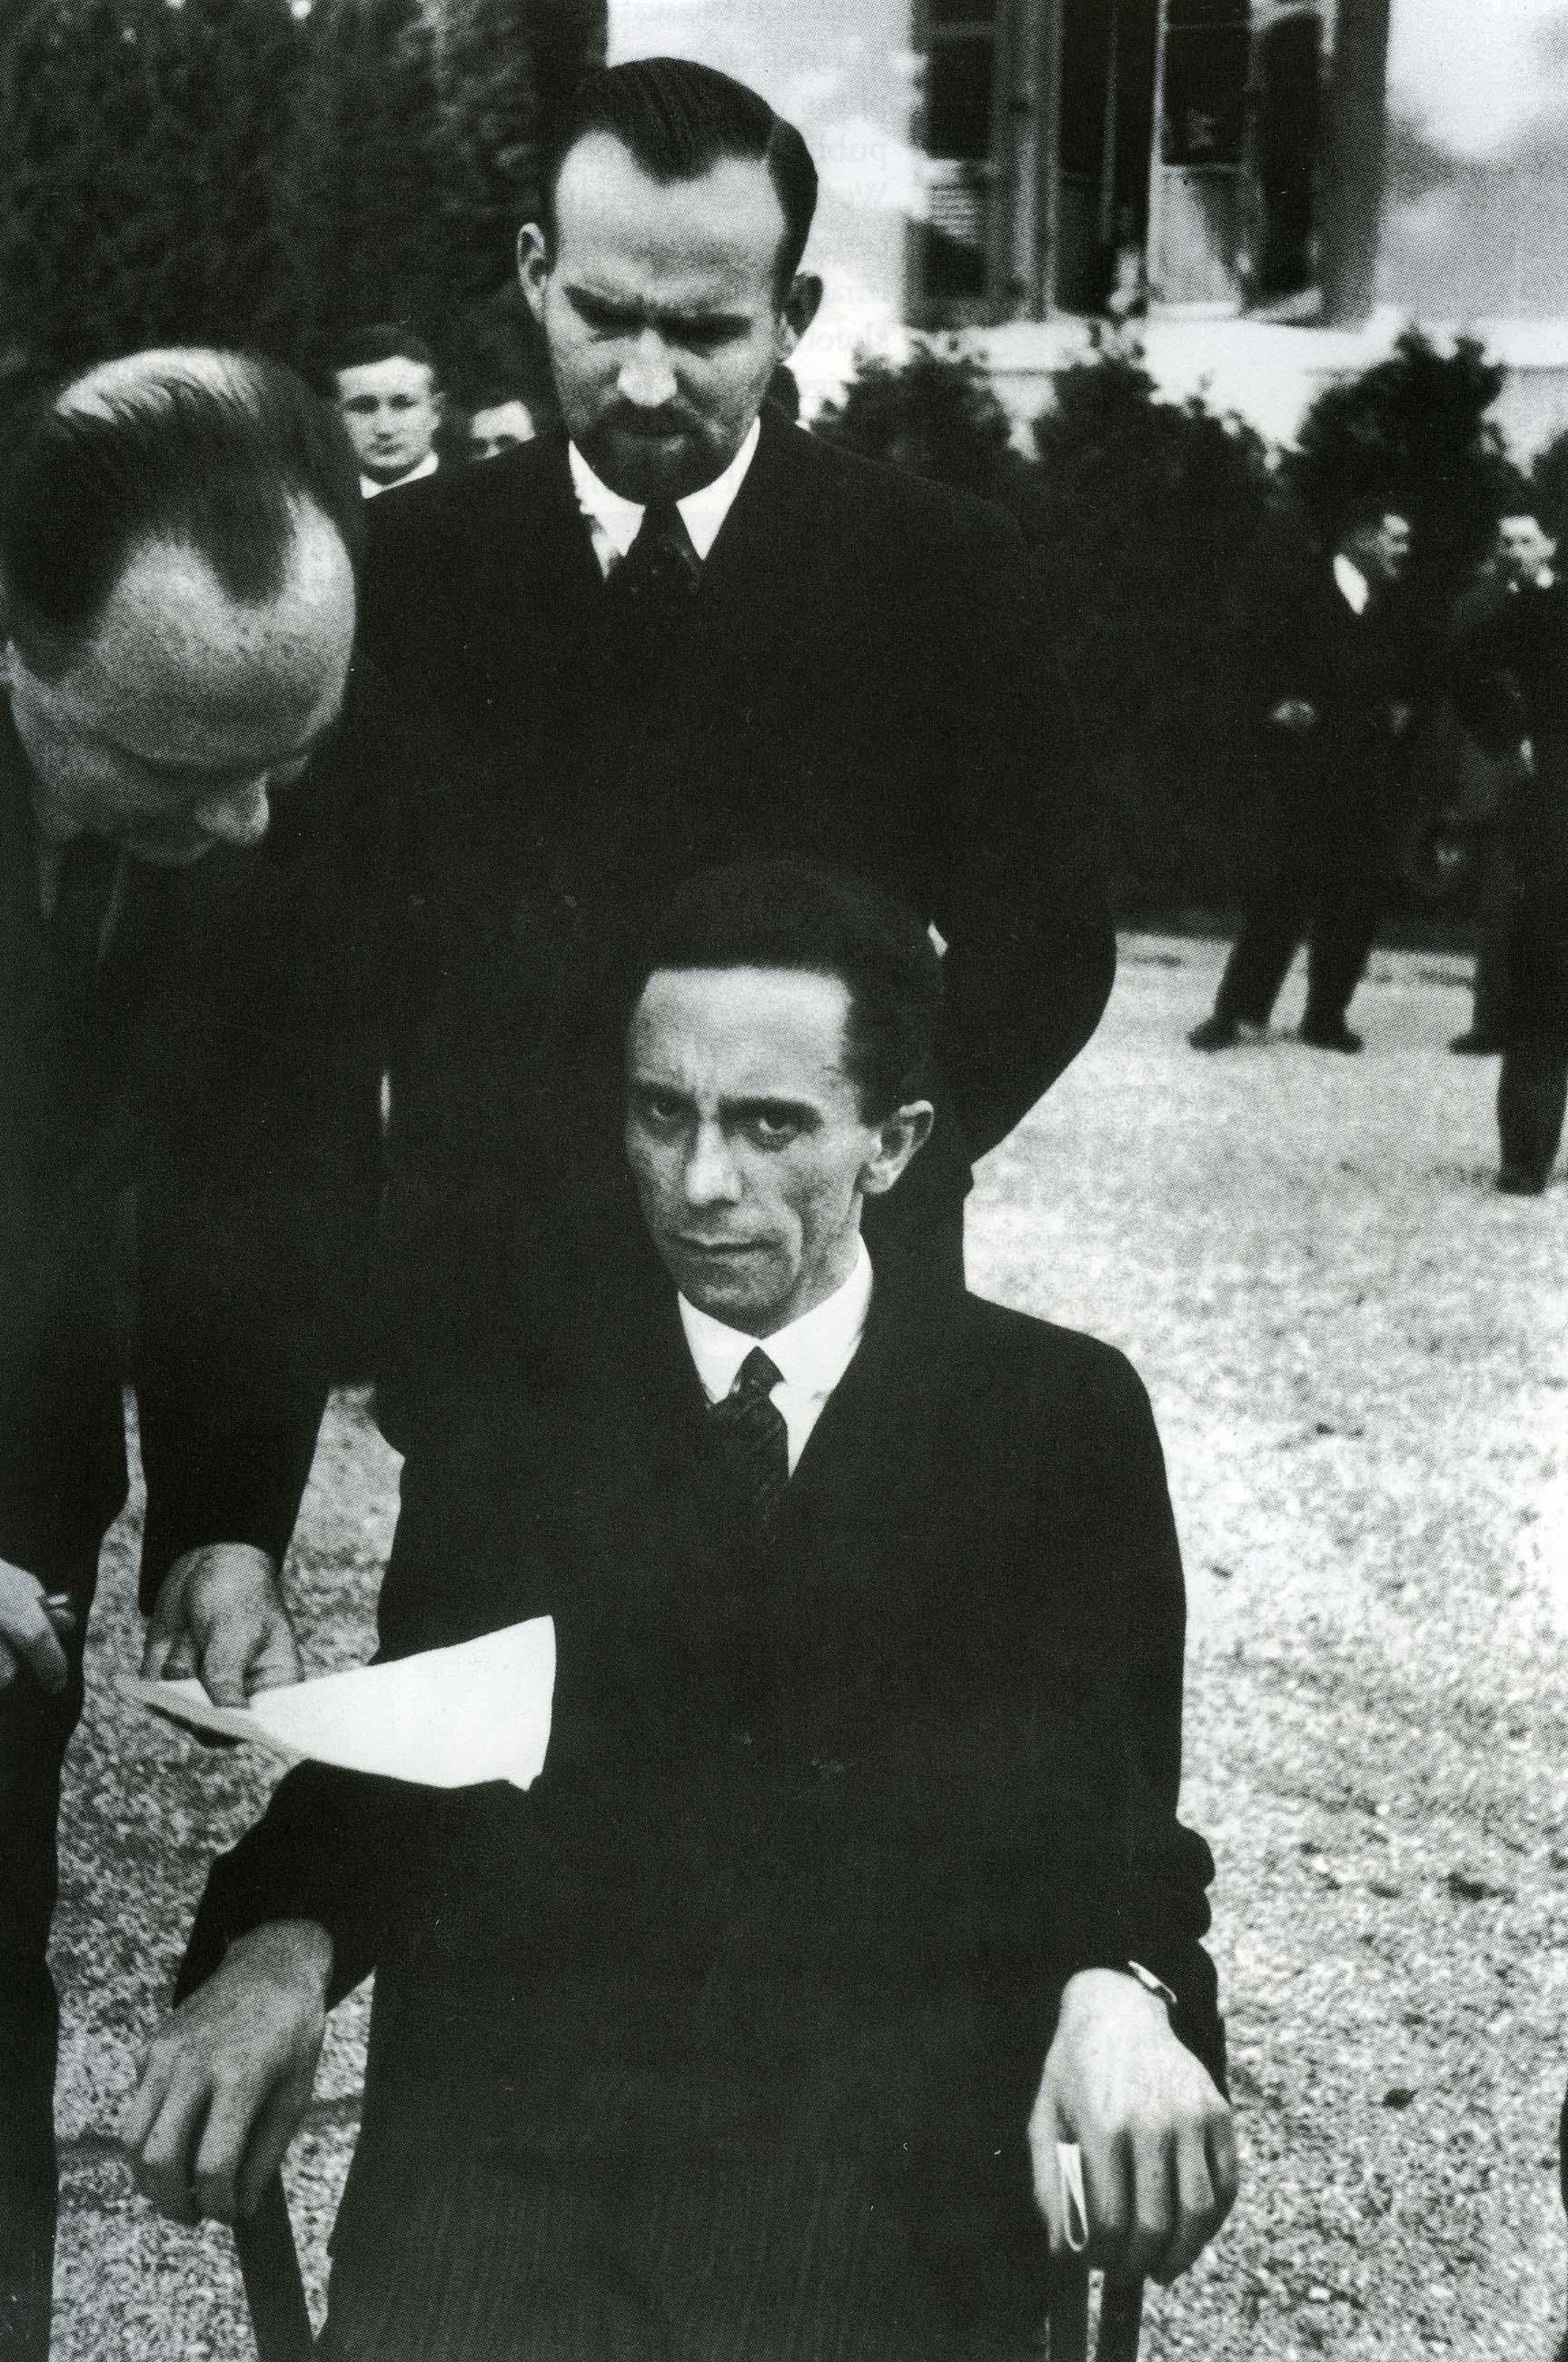 Joseph Goebbels after being told the photographer, Alfred ...